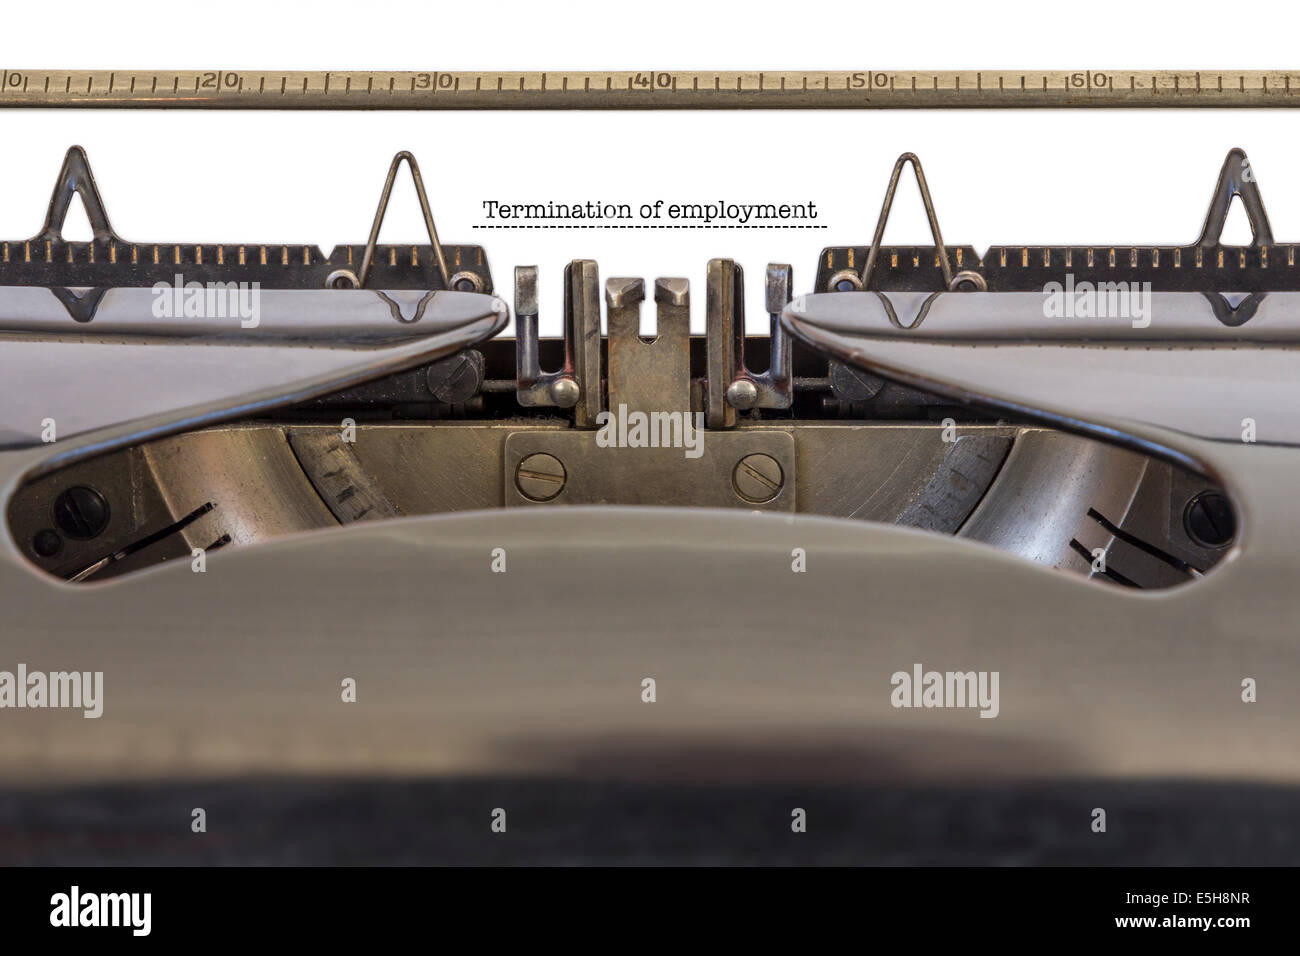 Termination of employment written on a typewriter - Stock Image